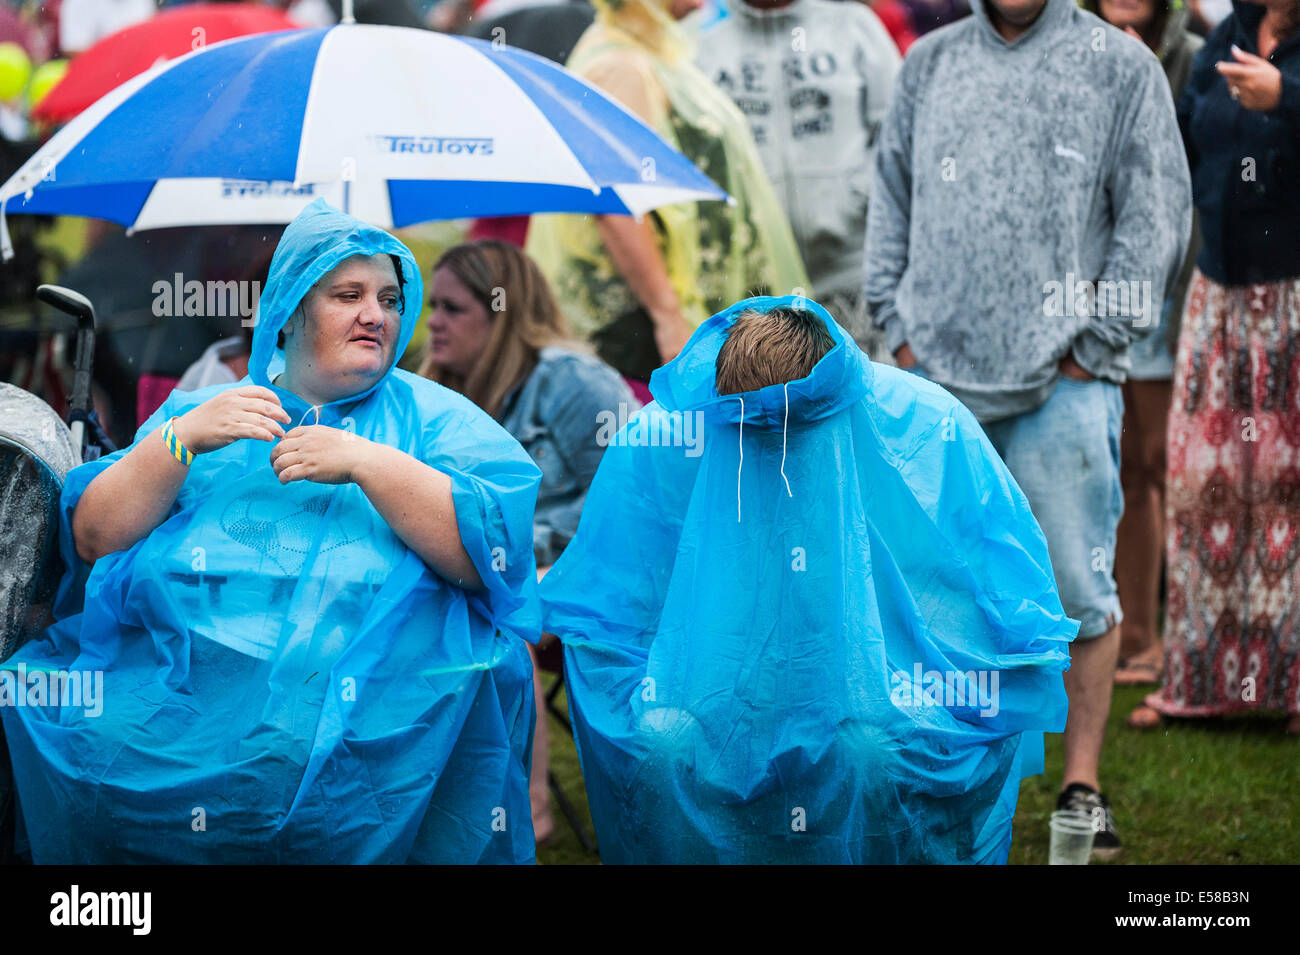 Festivalgoers sheltering from the bad weather at the Brentwood Festival. - Stock Image